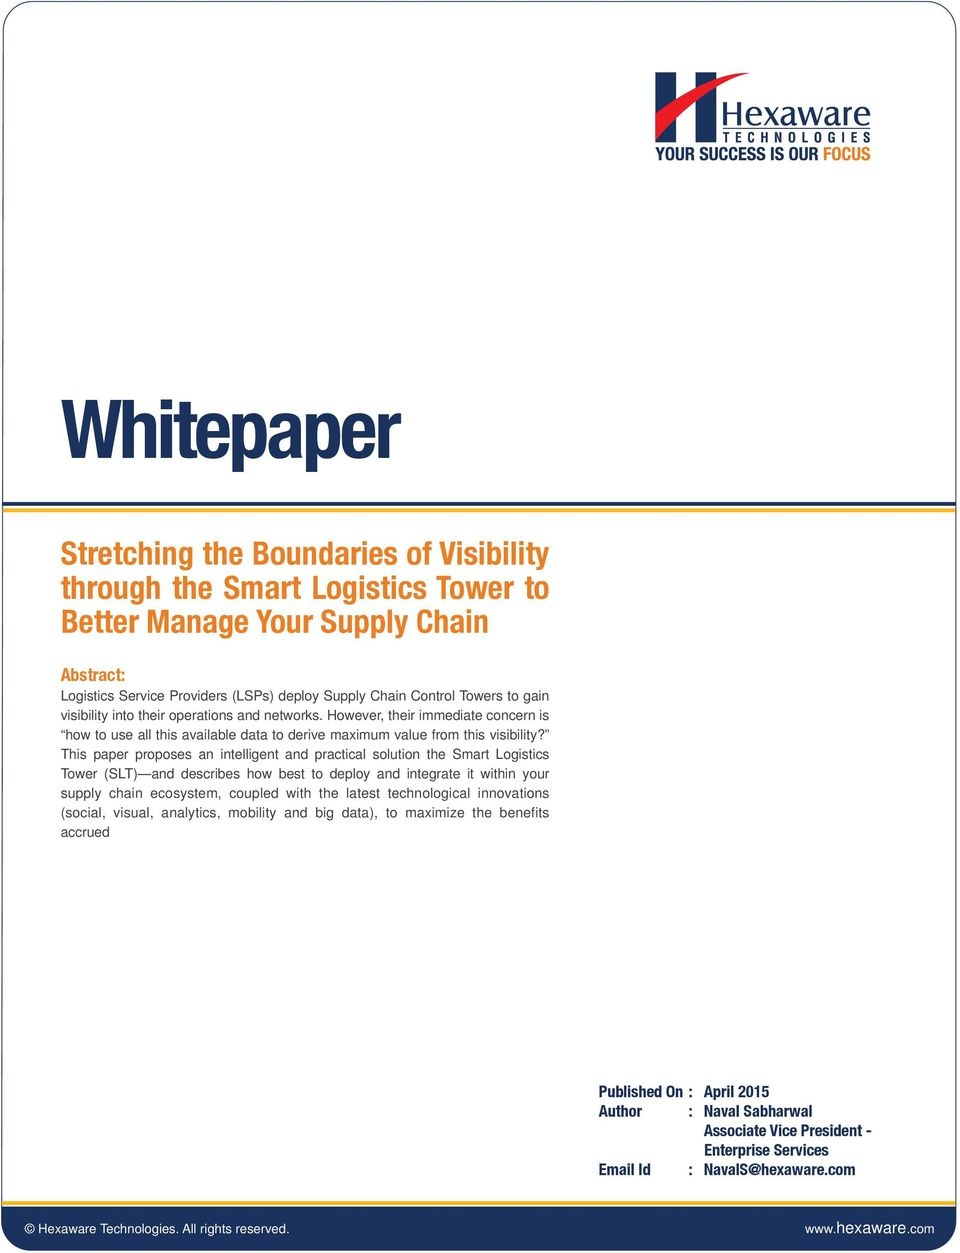 This paper proposes an intelligent and practical solution the Smart Logistics Tower (SLT) and describes how best to deploy and integrate it within your supply chain ecosystem, coupled with the latest